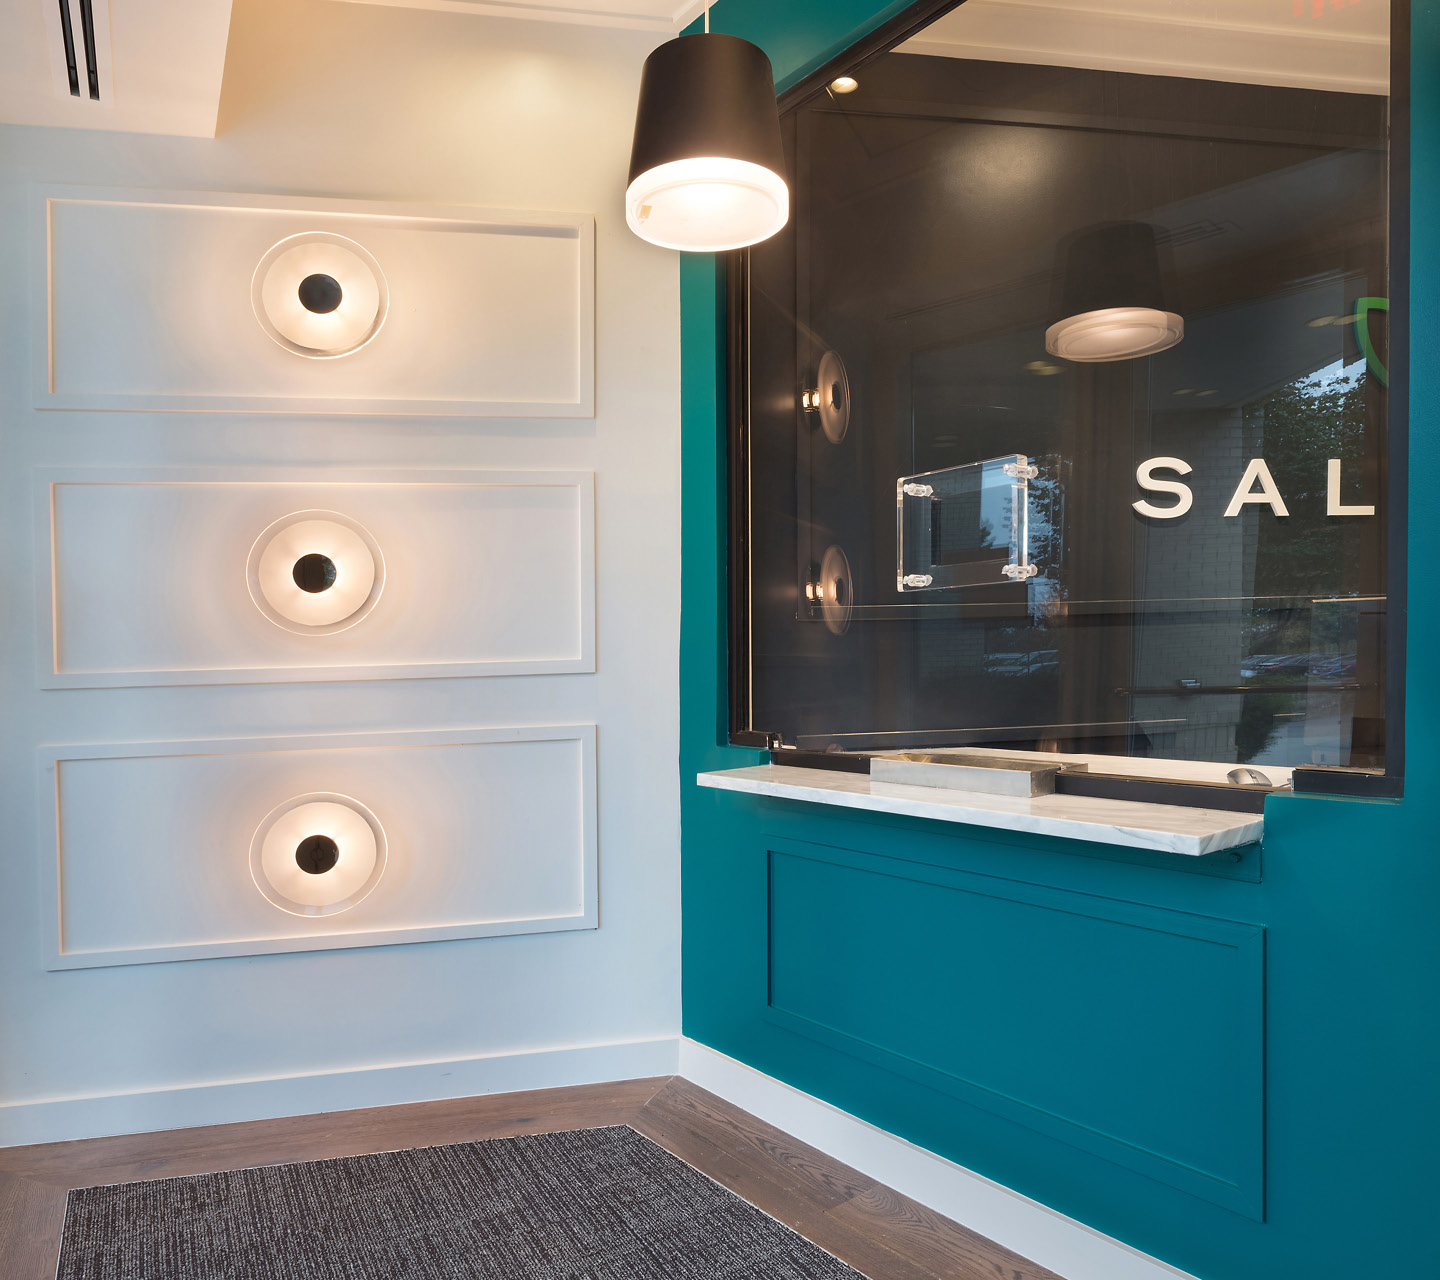 Salvera Dispensary Design by High Road Design Studio